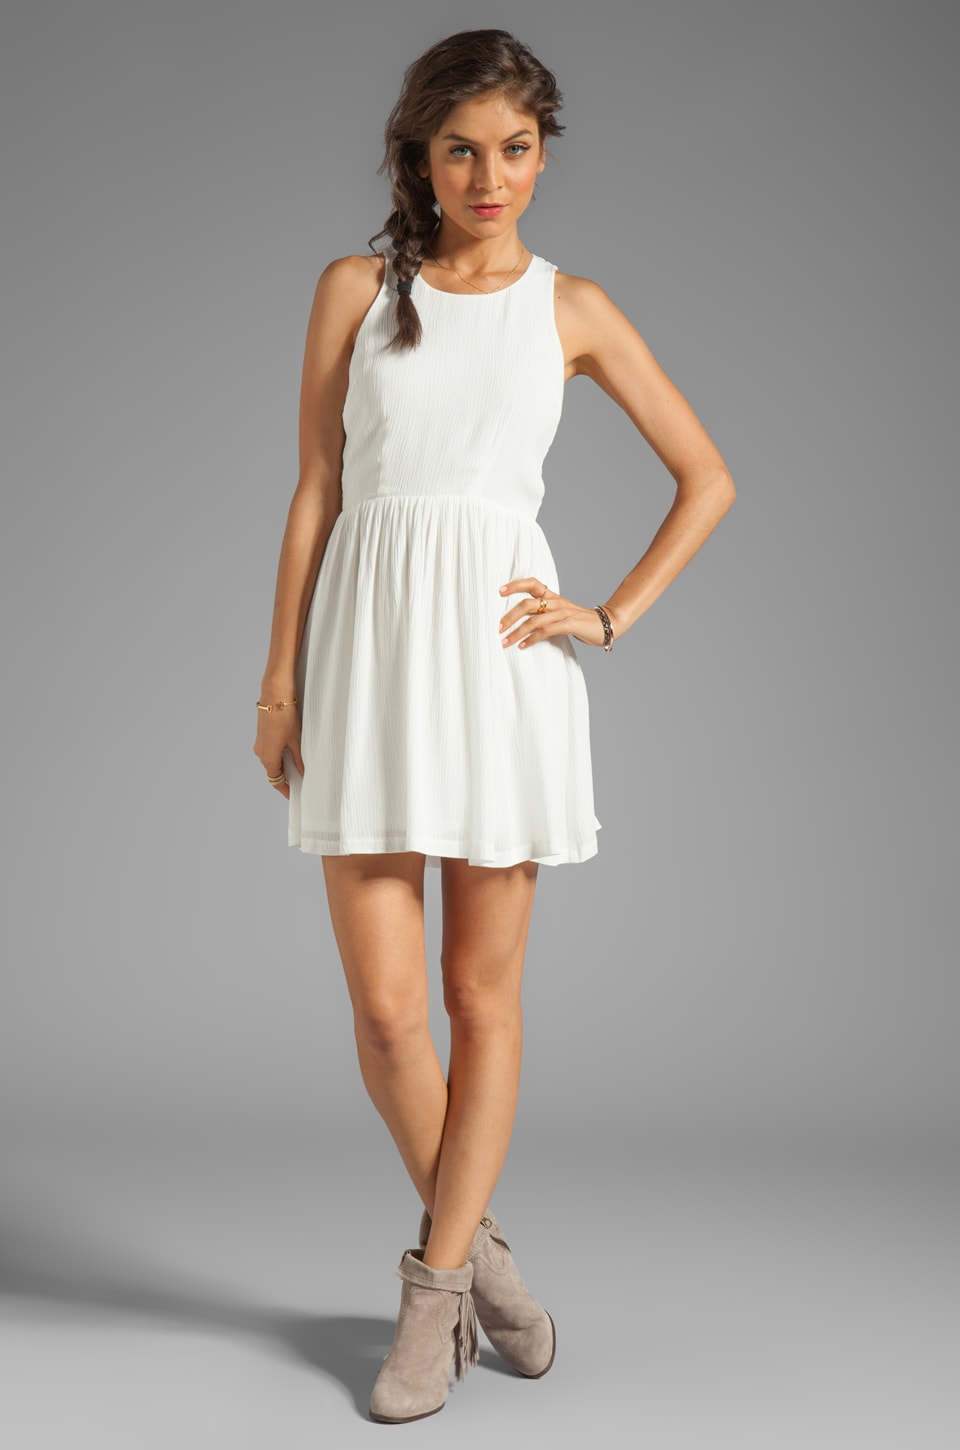 Eight Sixty Spider Web Back Gauze Dress in Off White  REVOLVE